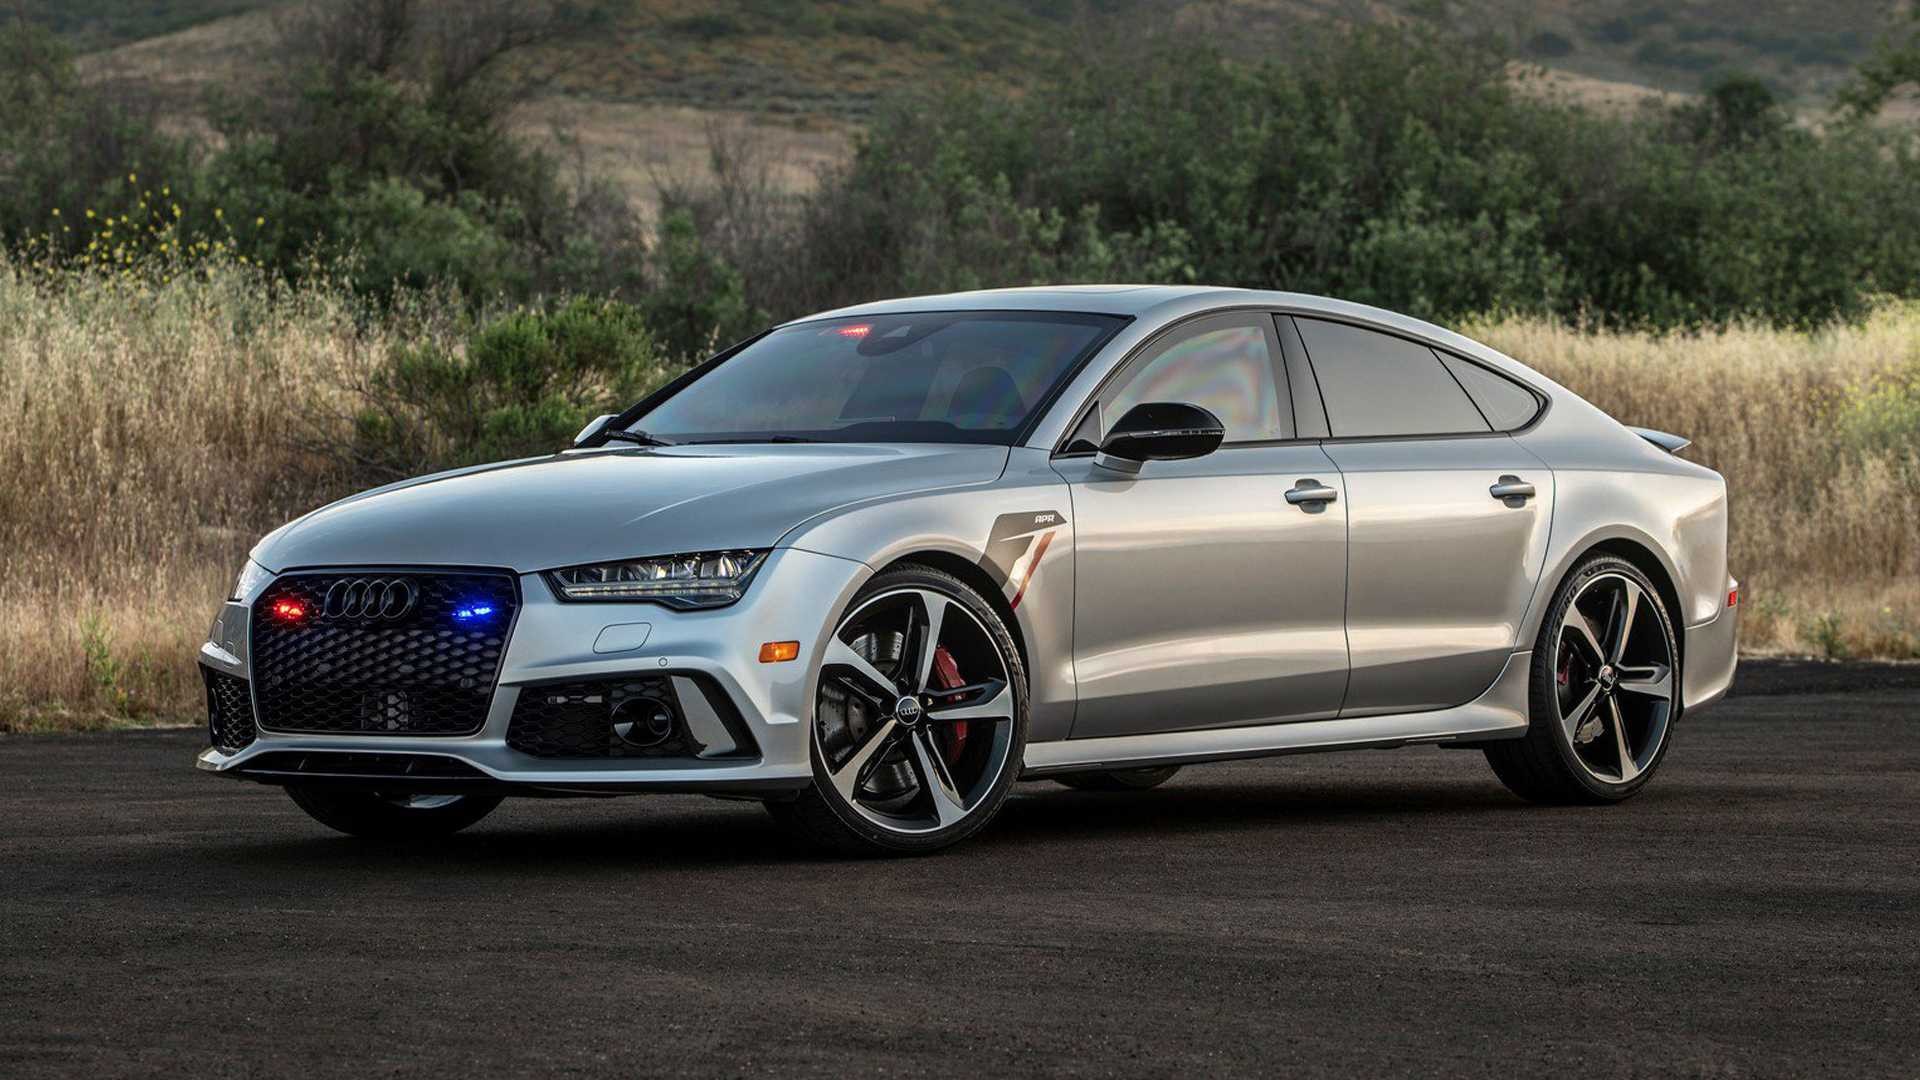 Audi Rs7 0 60 >> Armored Audi Rs7 Is The Fastest Armored Car Around Slashgear